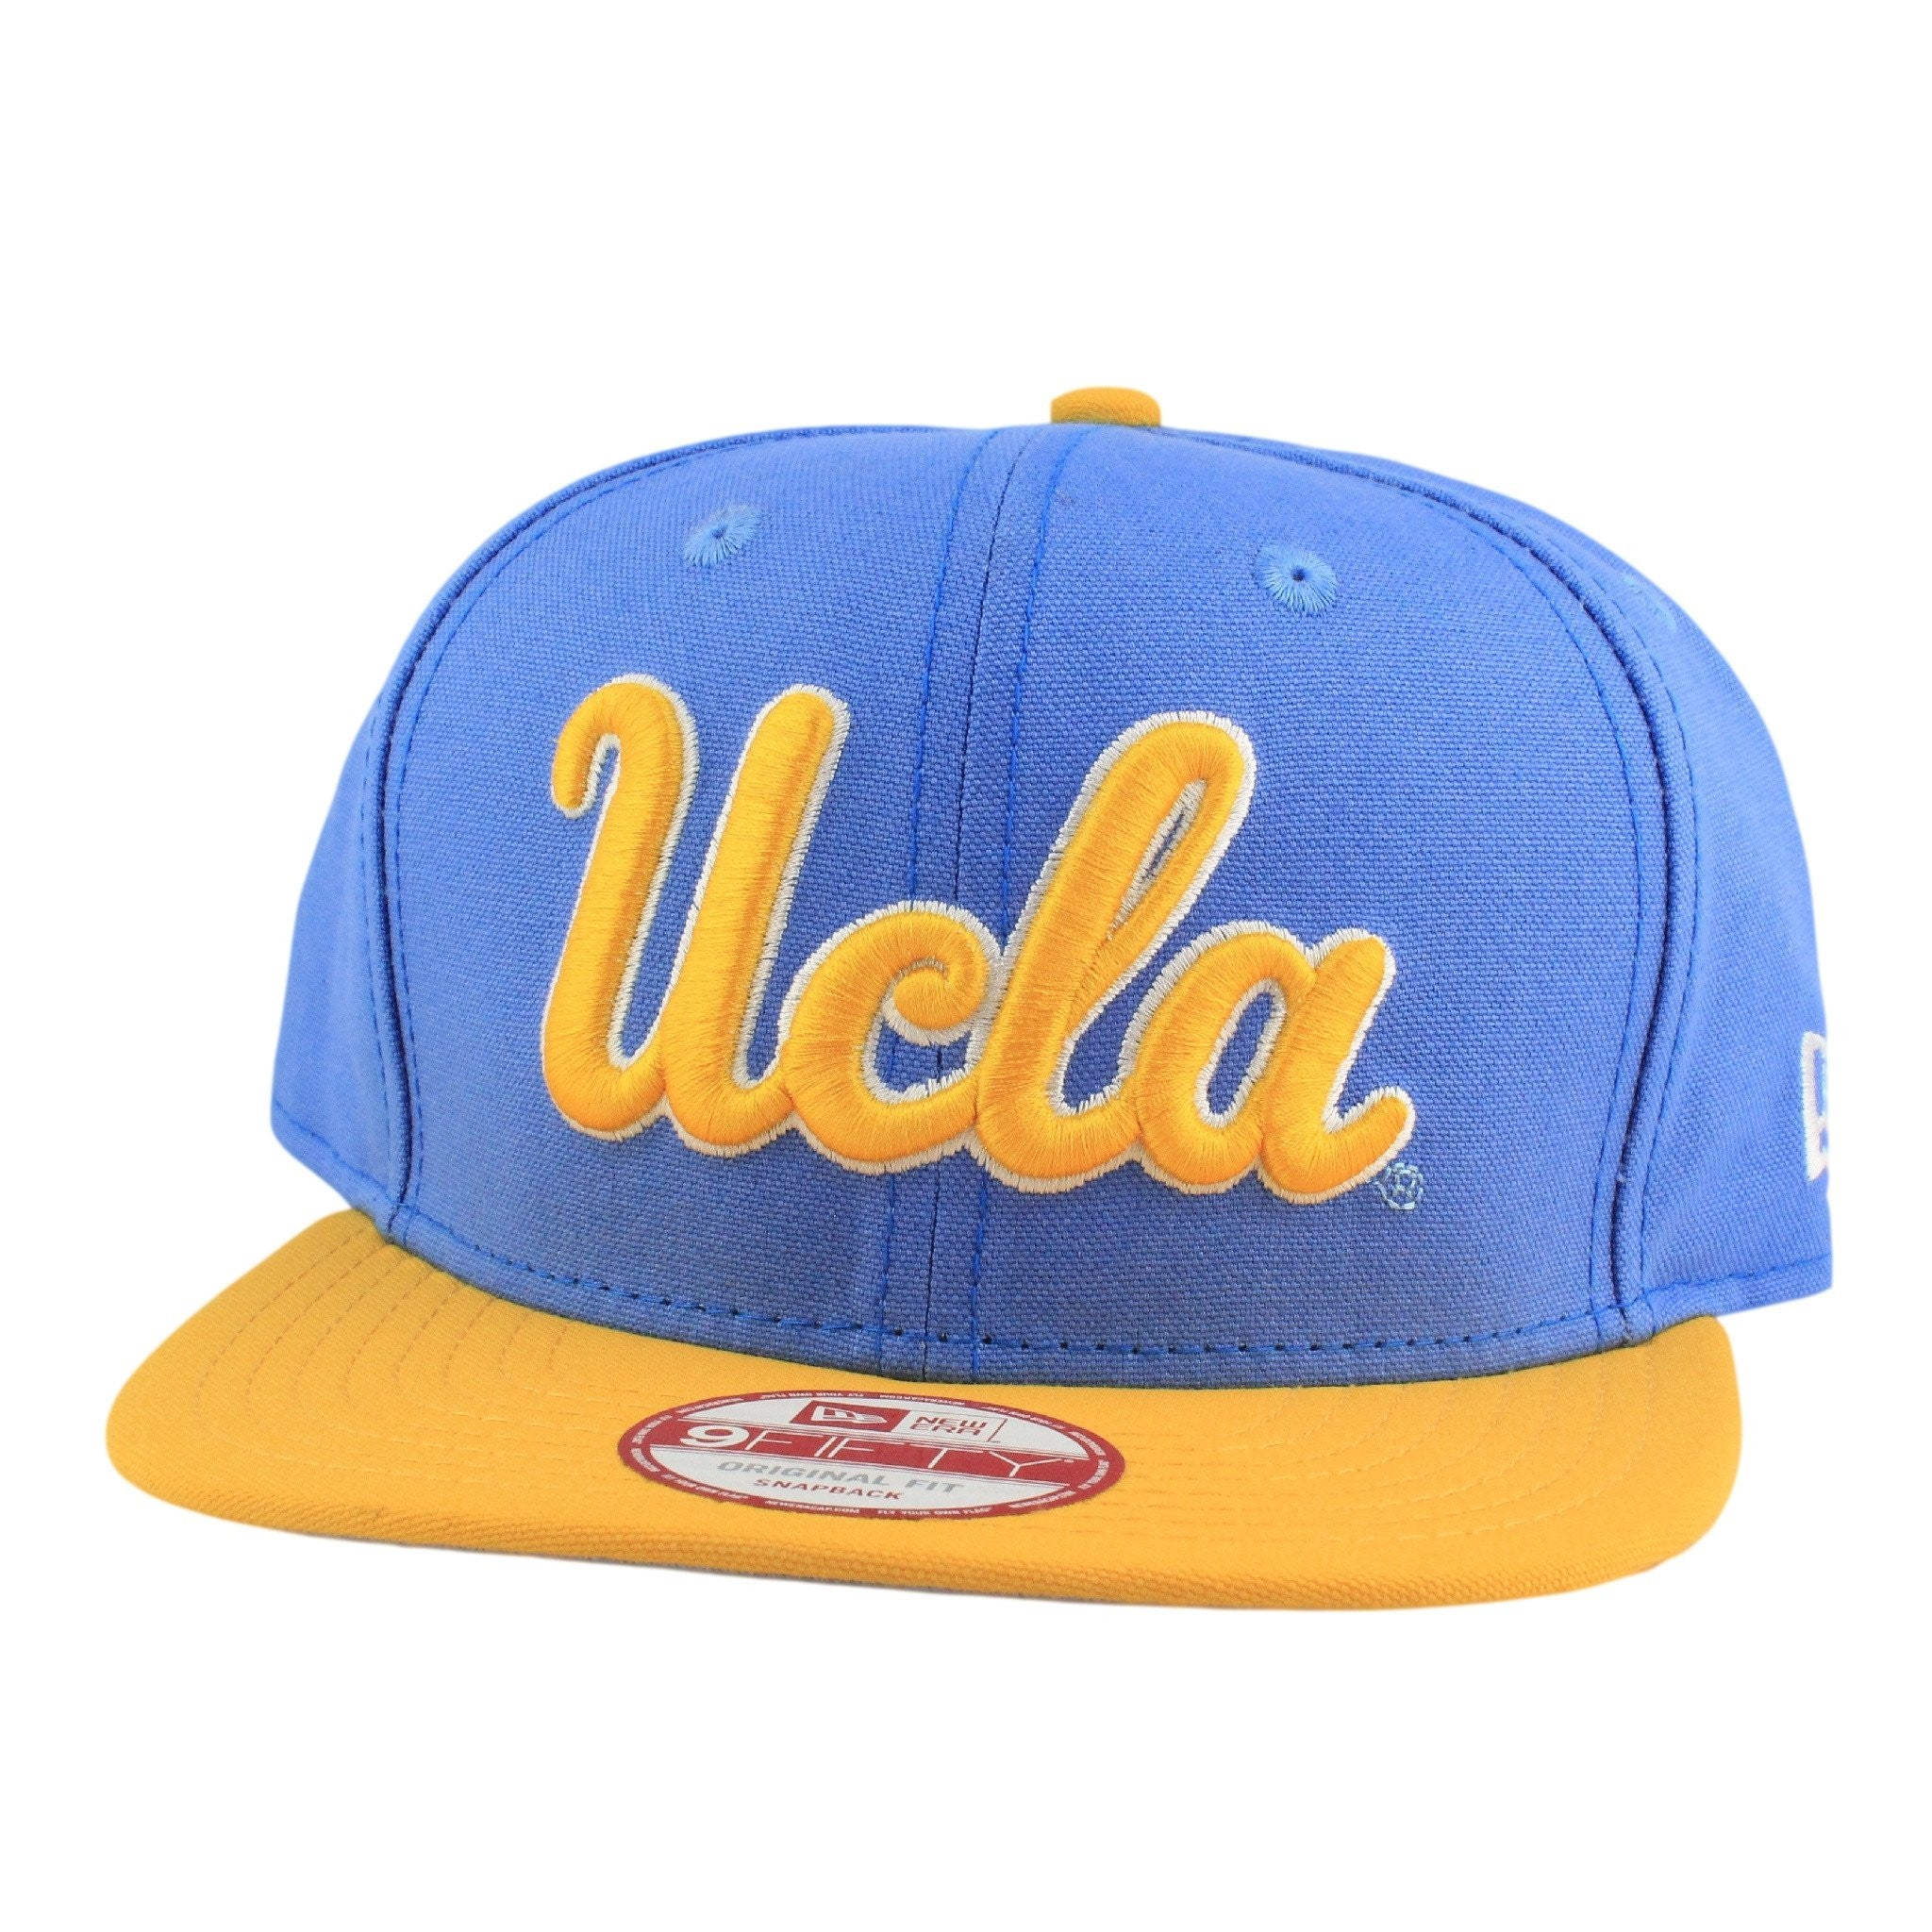 6f42dcf6 UCLA Bruins Shore Snapper Blue/Yellow Snapback | New Era | Bespoke ...